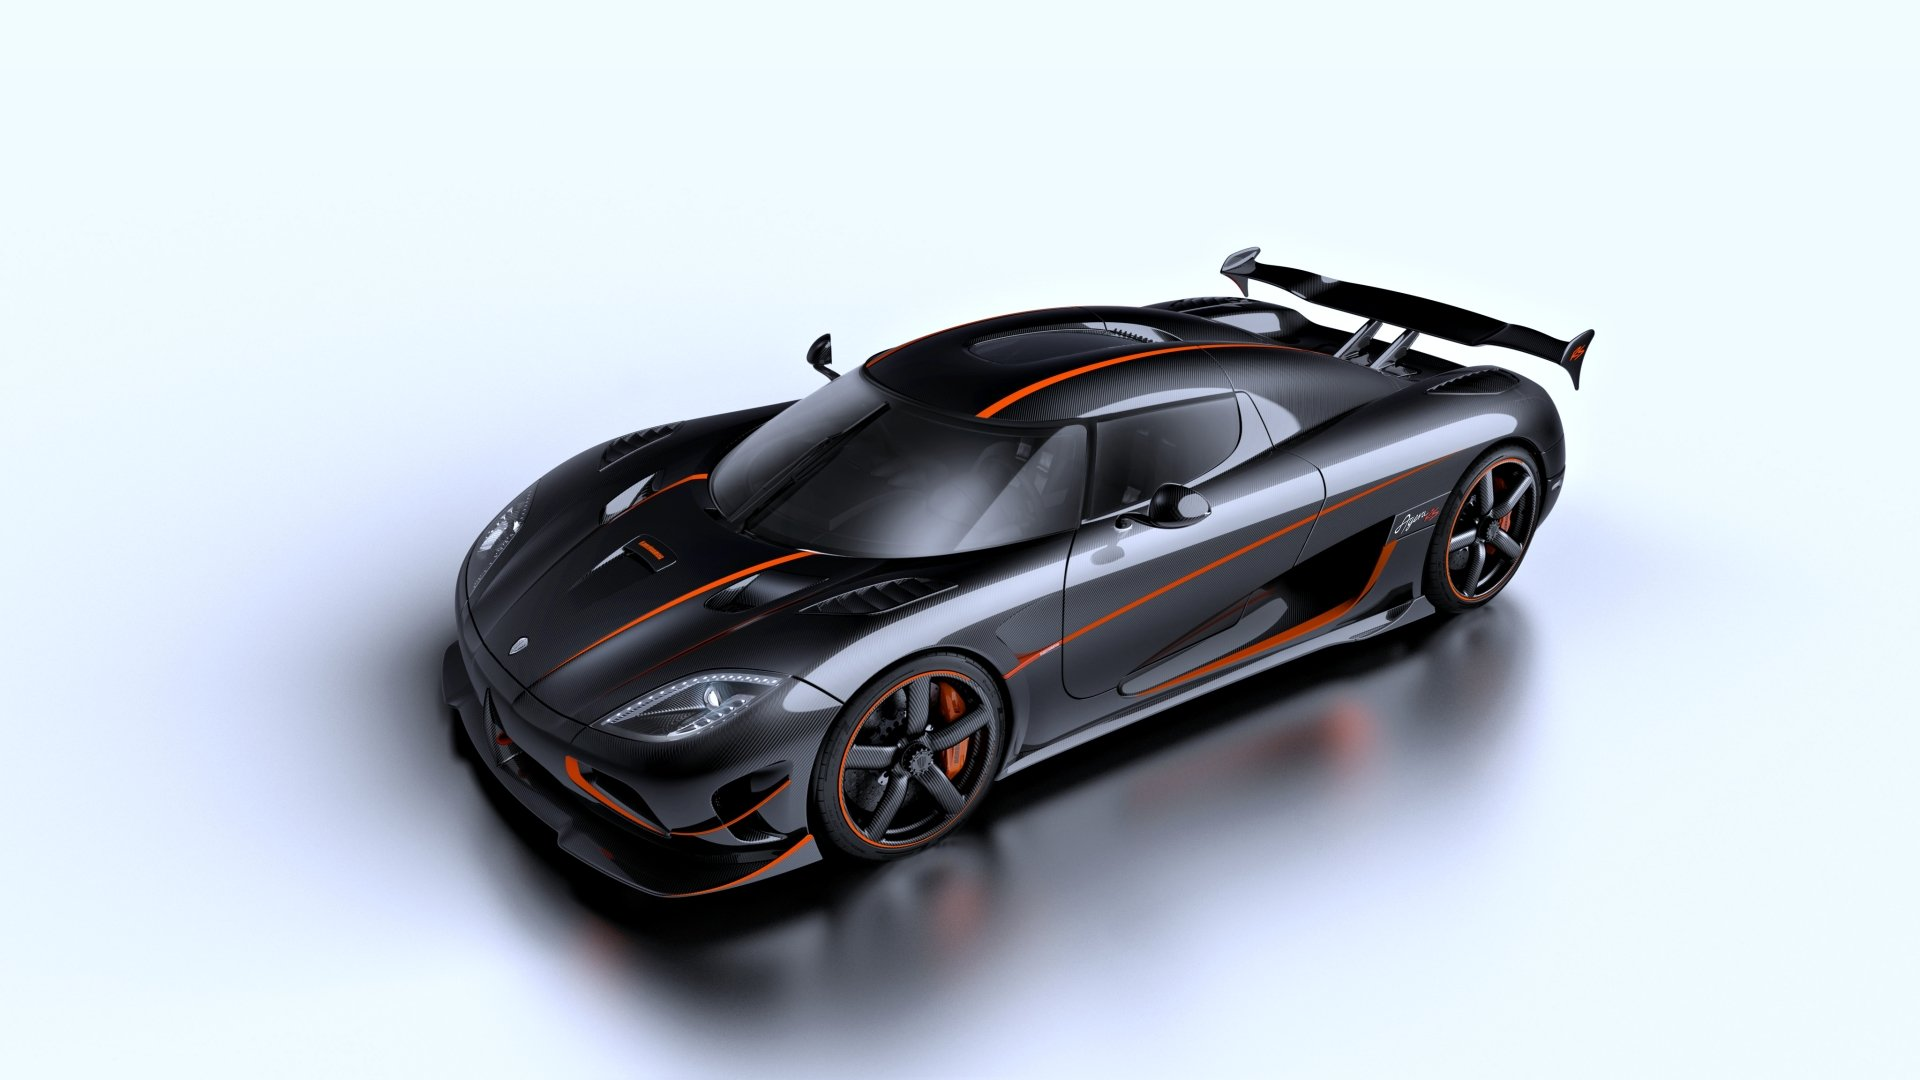 Vehicles - Koenigsegg Agera  Car Koenigsegg Koenigsegg Agera RS Sport Car Black Car Hypercar Wallpaper